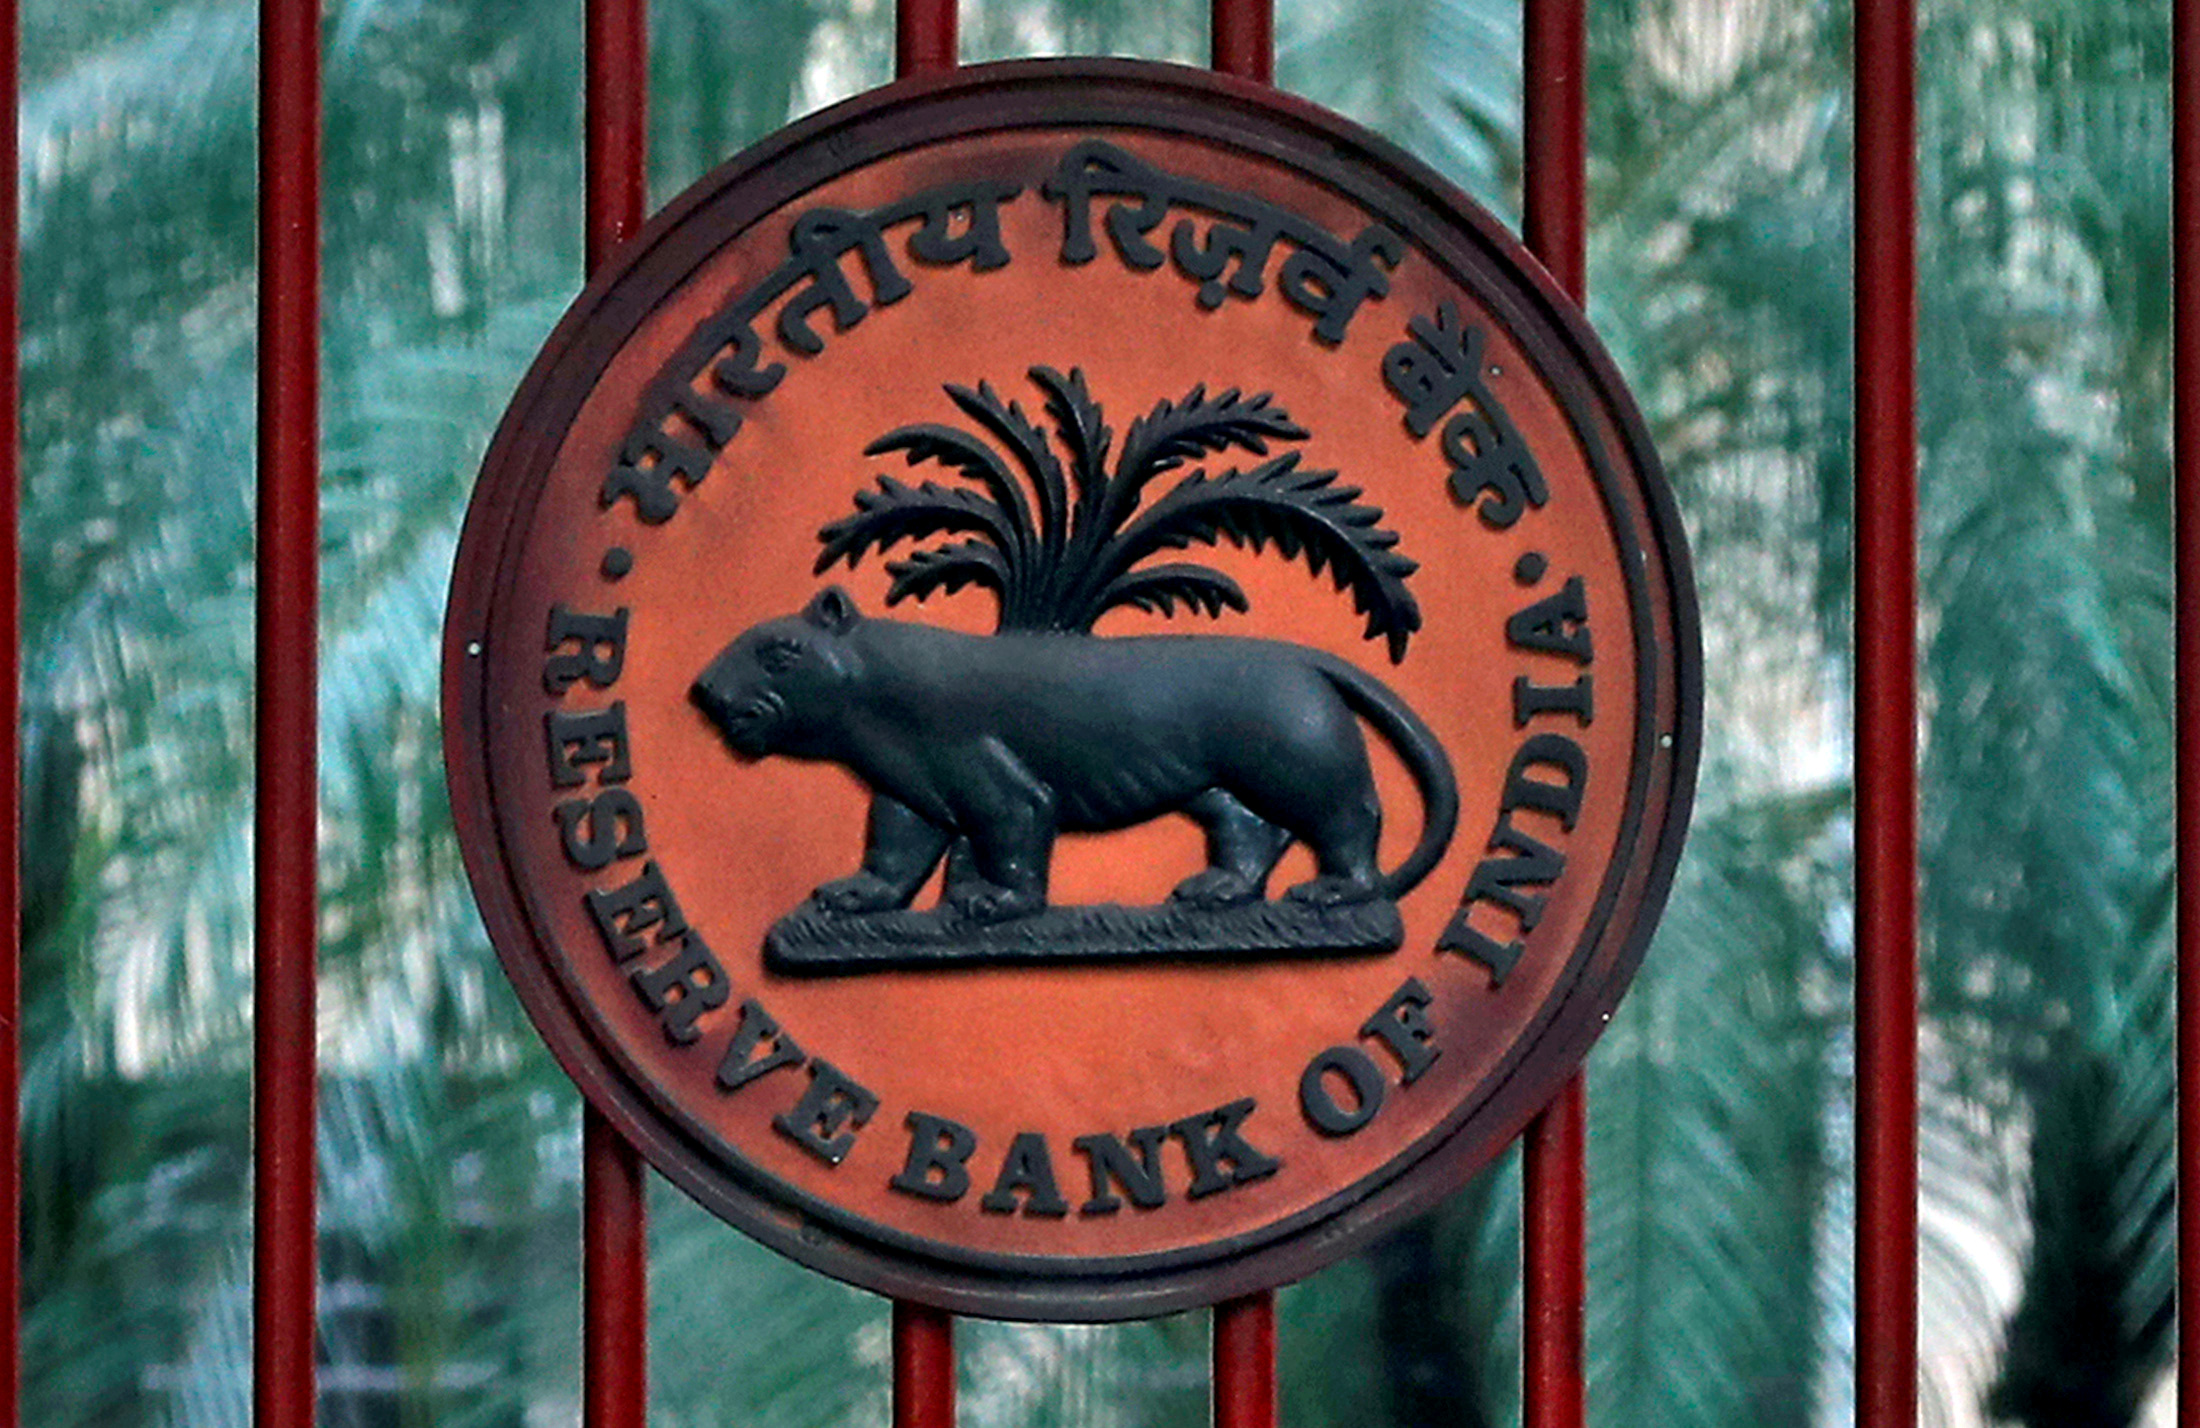 FILE PHOTO: A Reserve Bank of India (RBI) logo is seen at the gate of its office in New Delhi, India, November 9, 2018. REUTERS/Altaf Hussain/File Photo